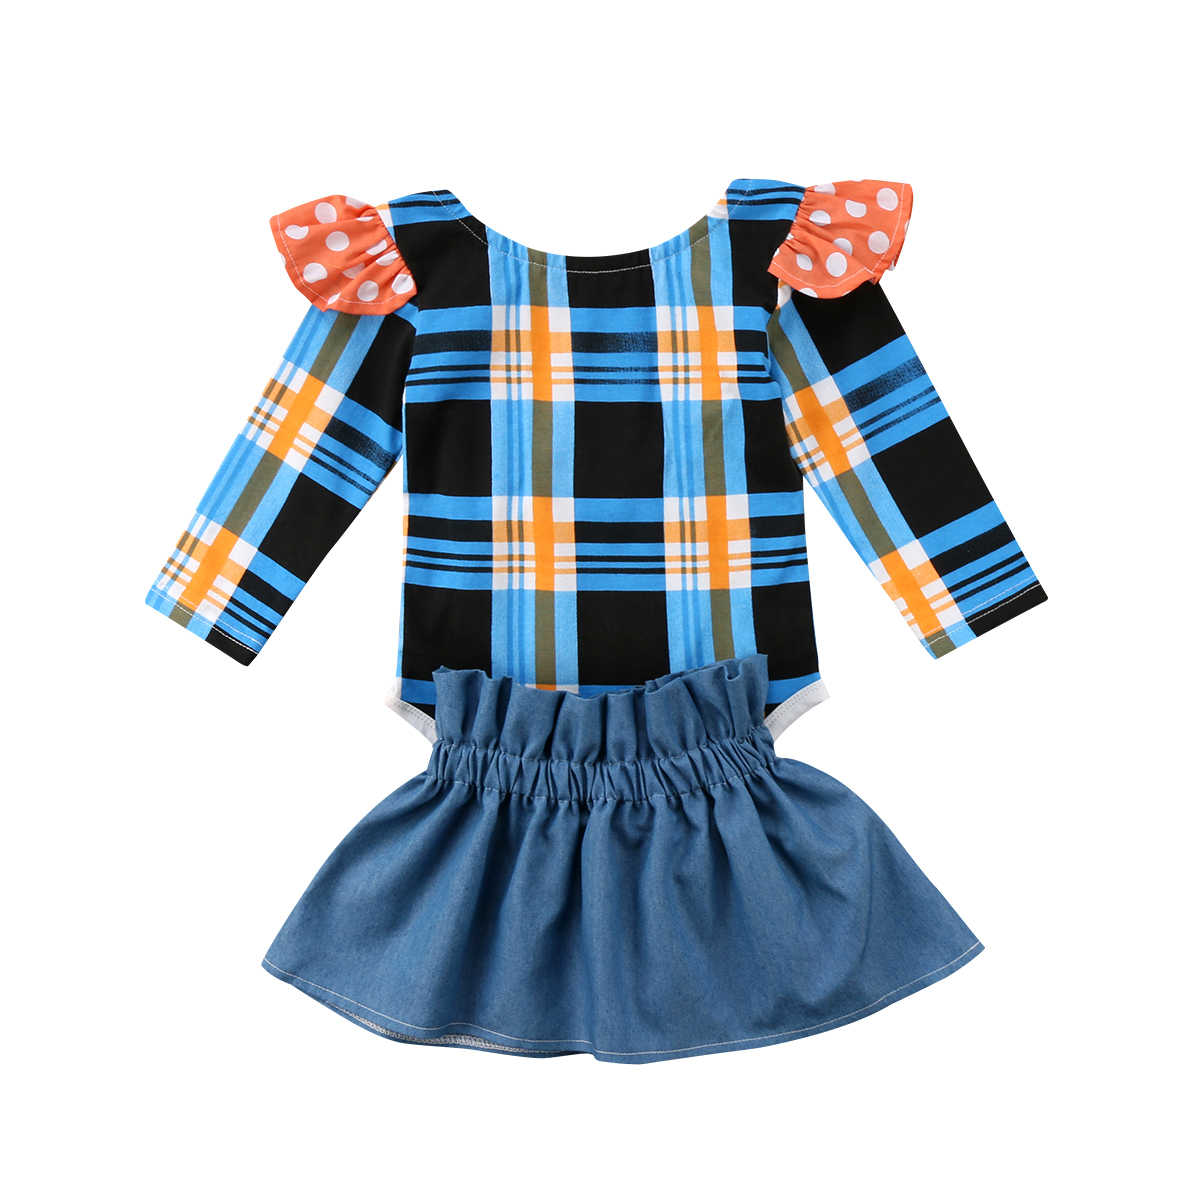 1ee66e39b Detail Feedback Questions about 2018 Cute Newborn Baby Tartan Plaid ...